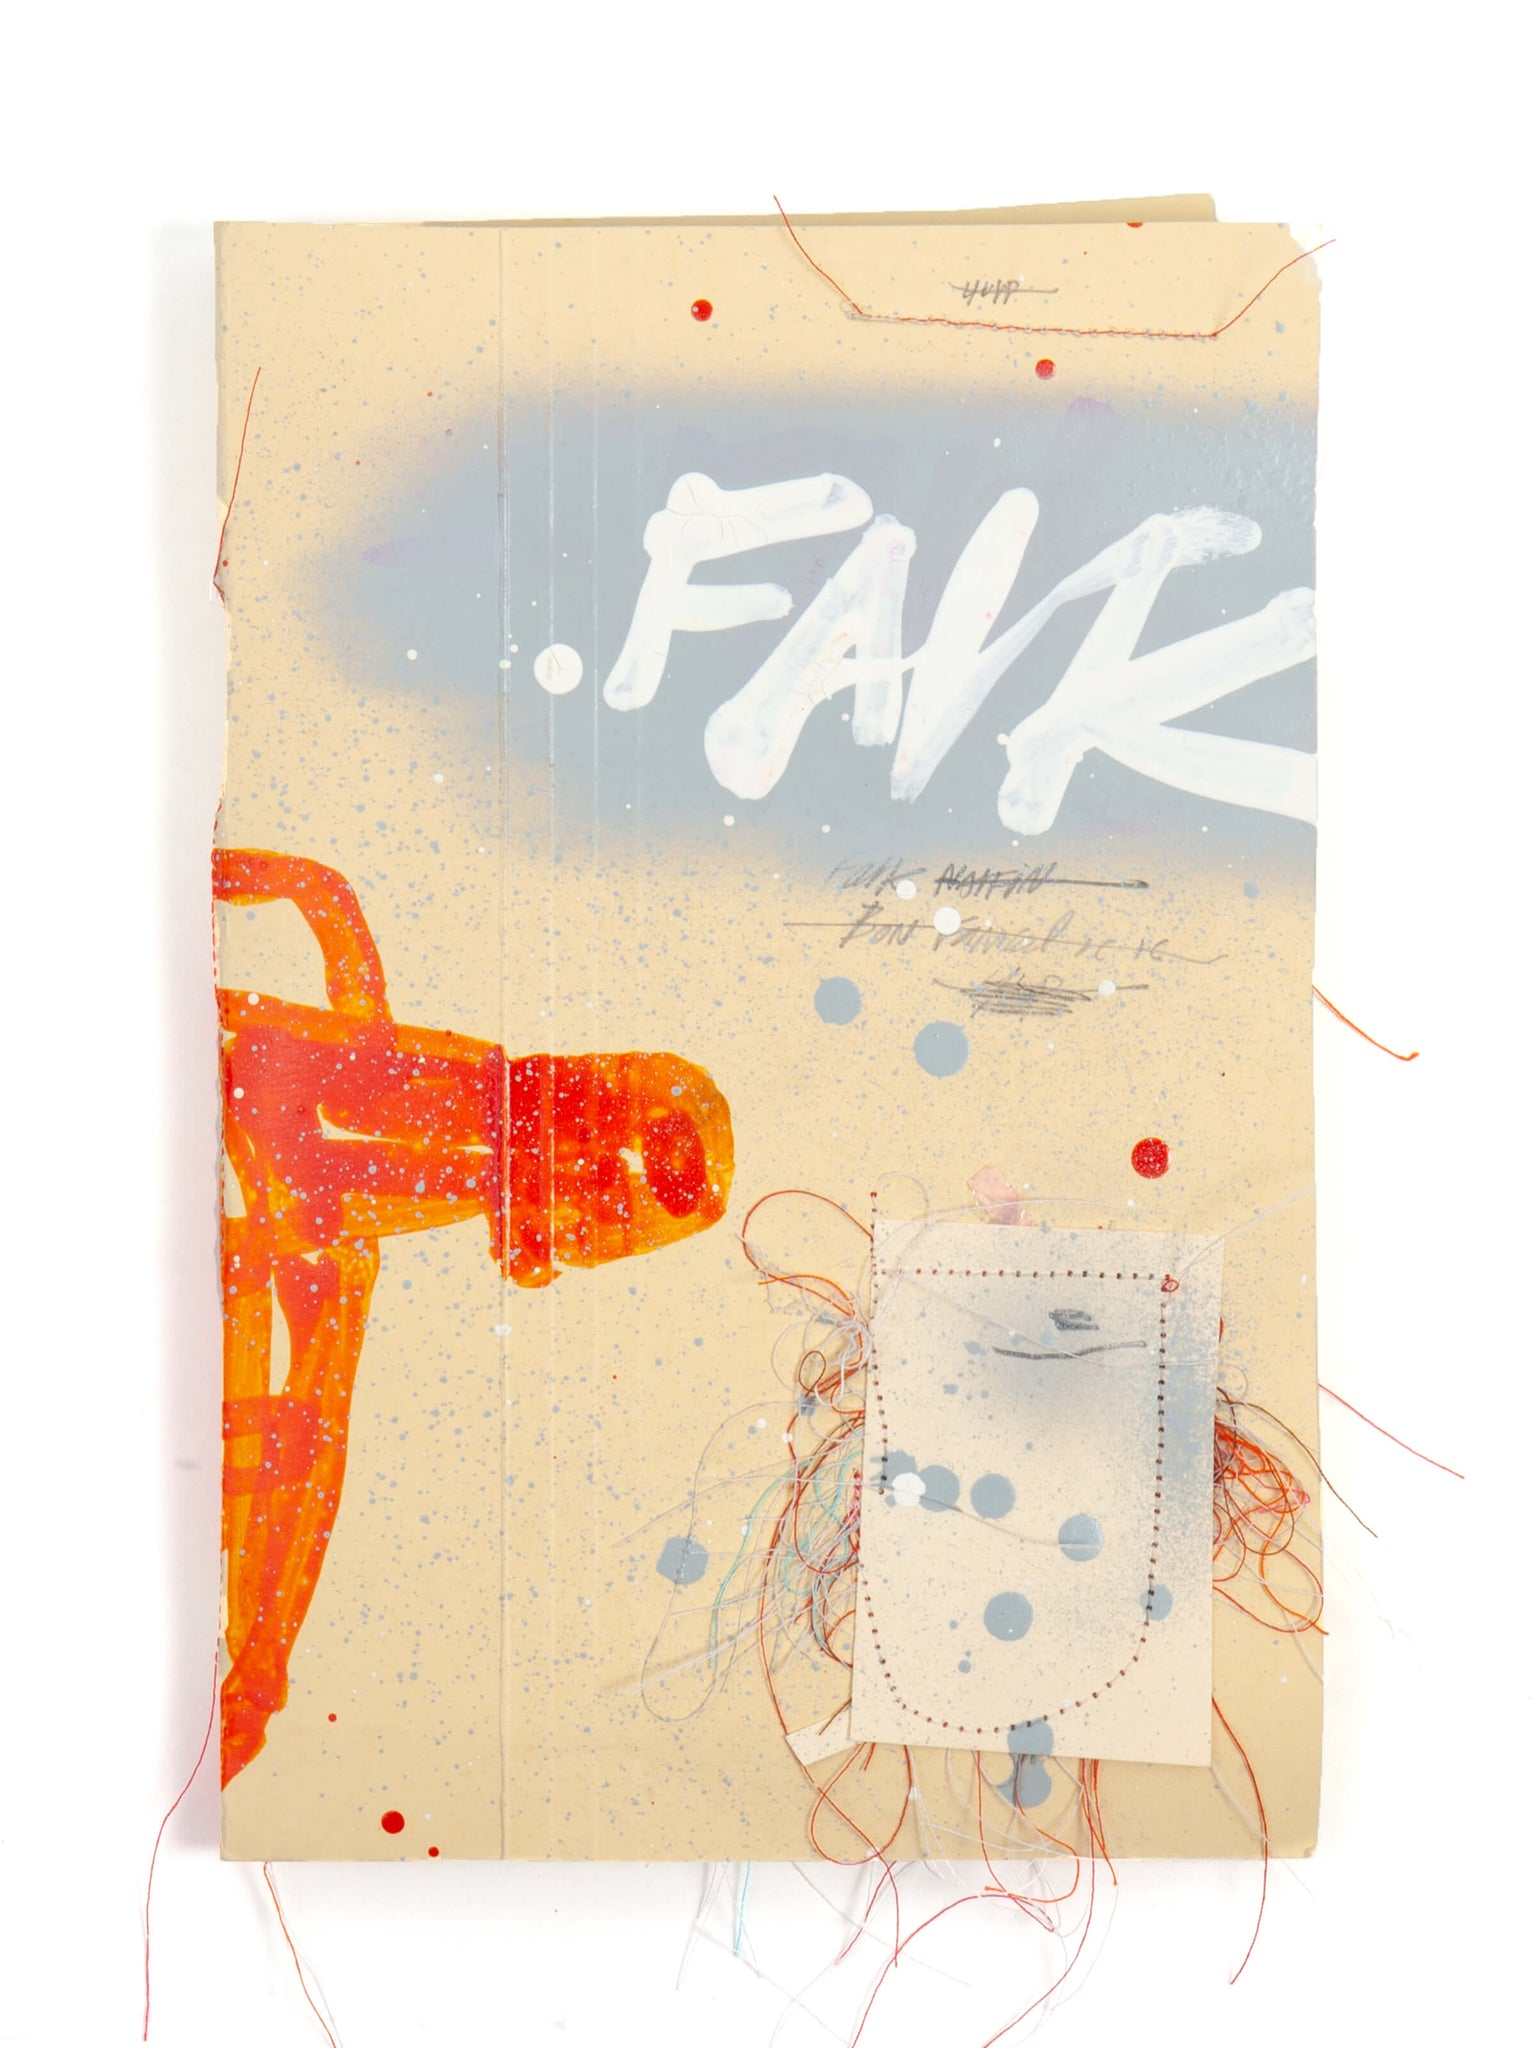 Thomas Campbell - Fark Zine